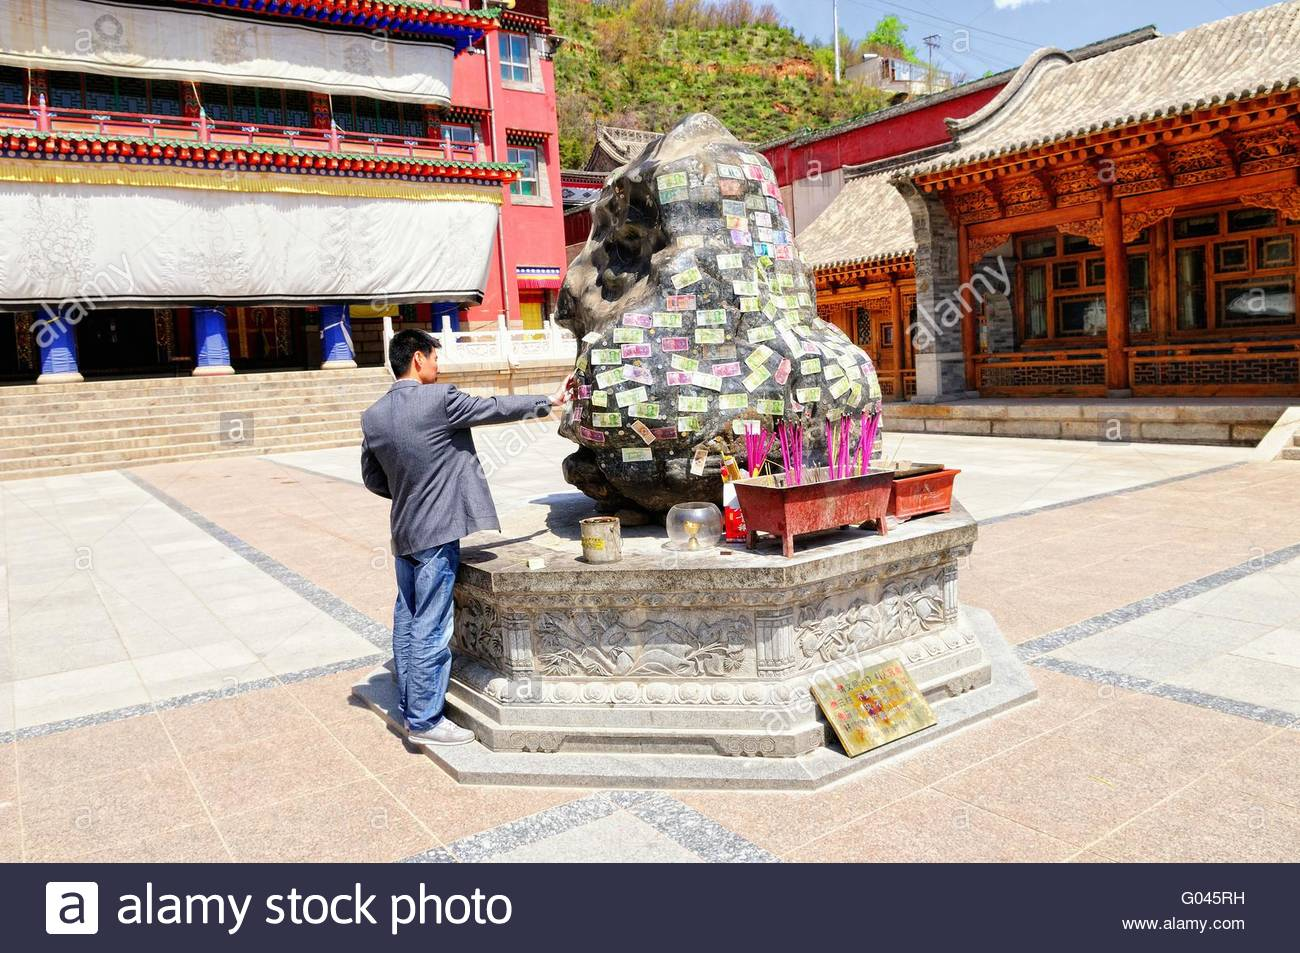 Offerings in the Champa Ling Monastery Kumbum Stock Photo